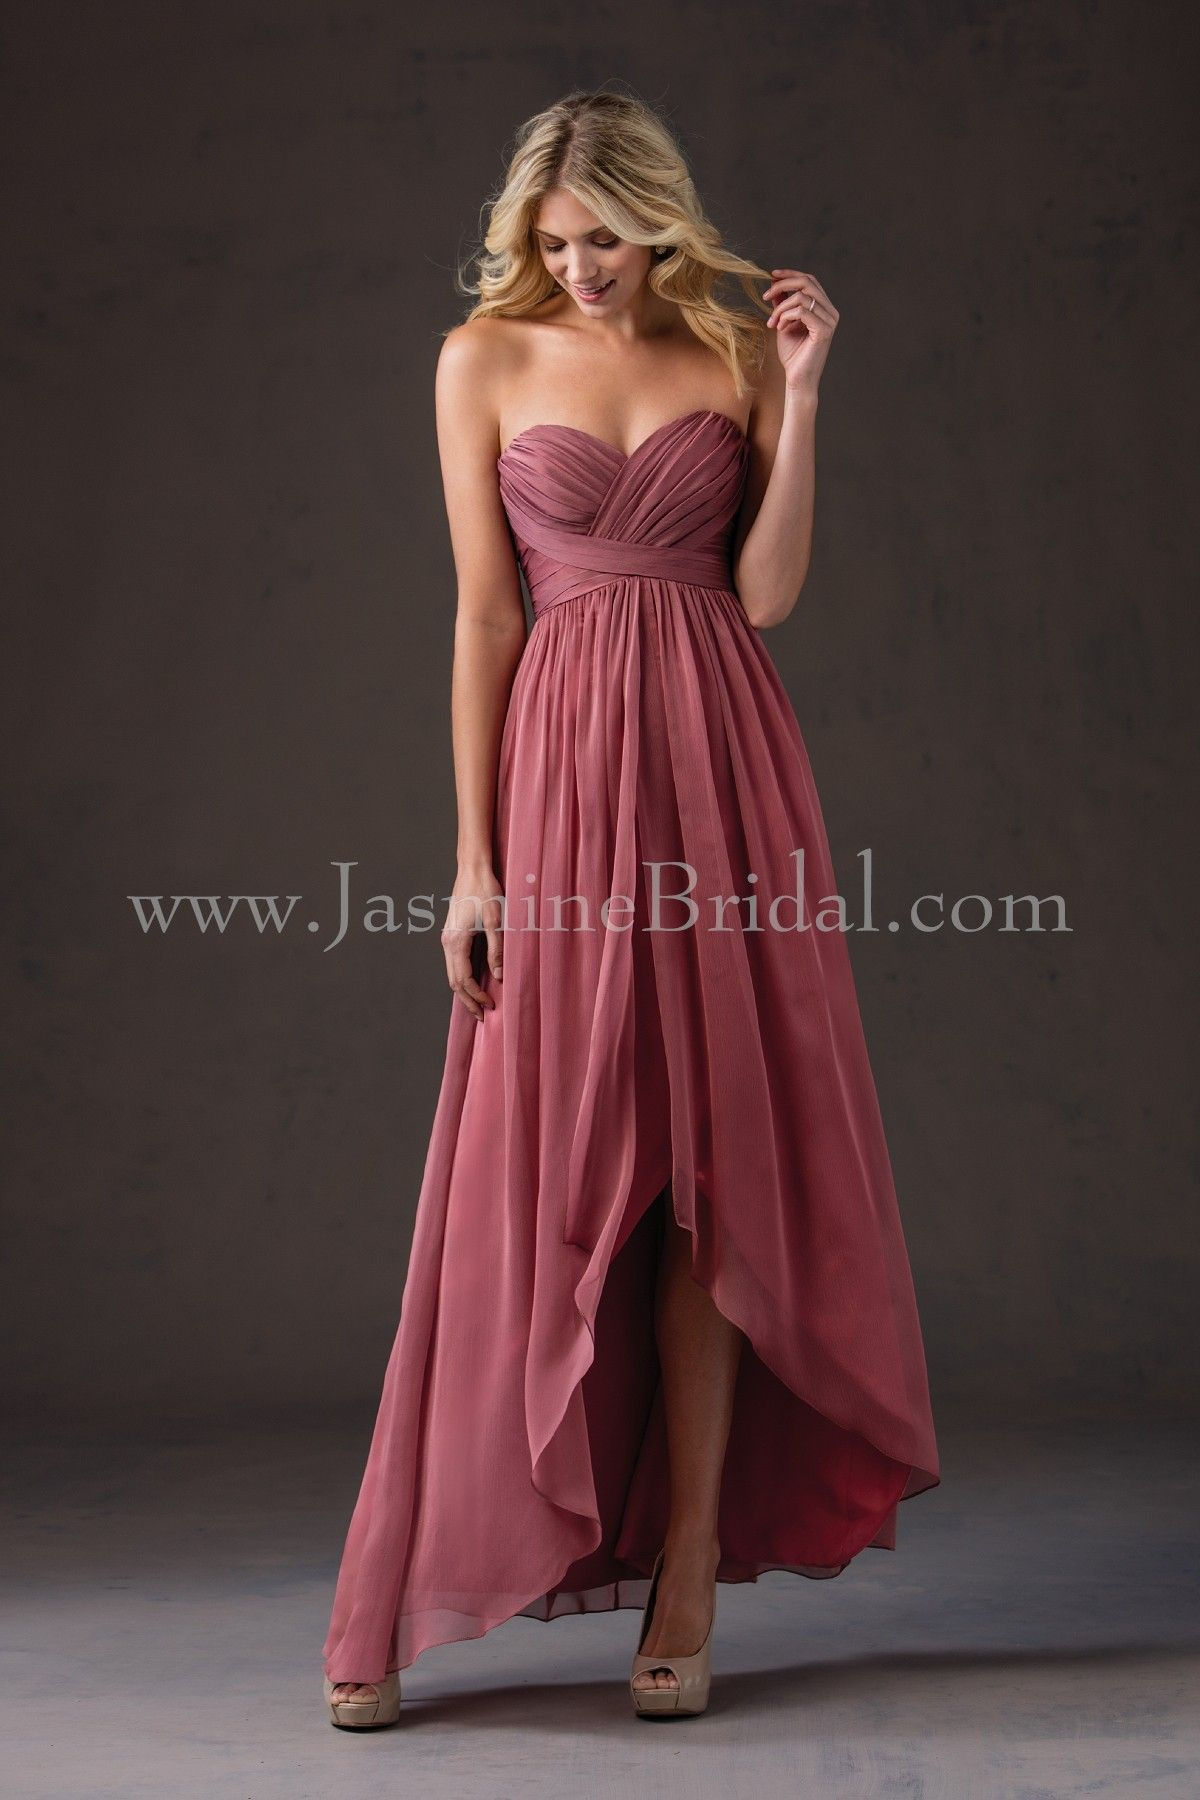 Jasmine bridal bridesmaid dress belsoie style l184052 in for Hi lo hemline wedding dresses